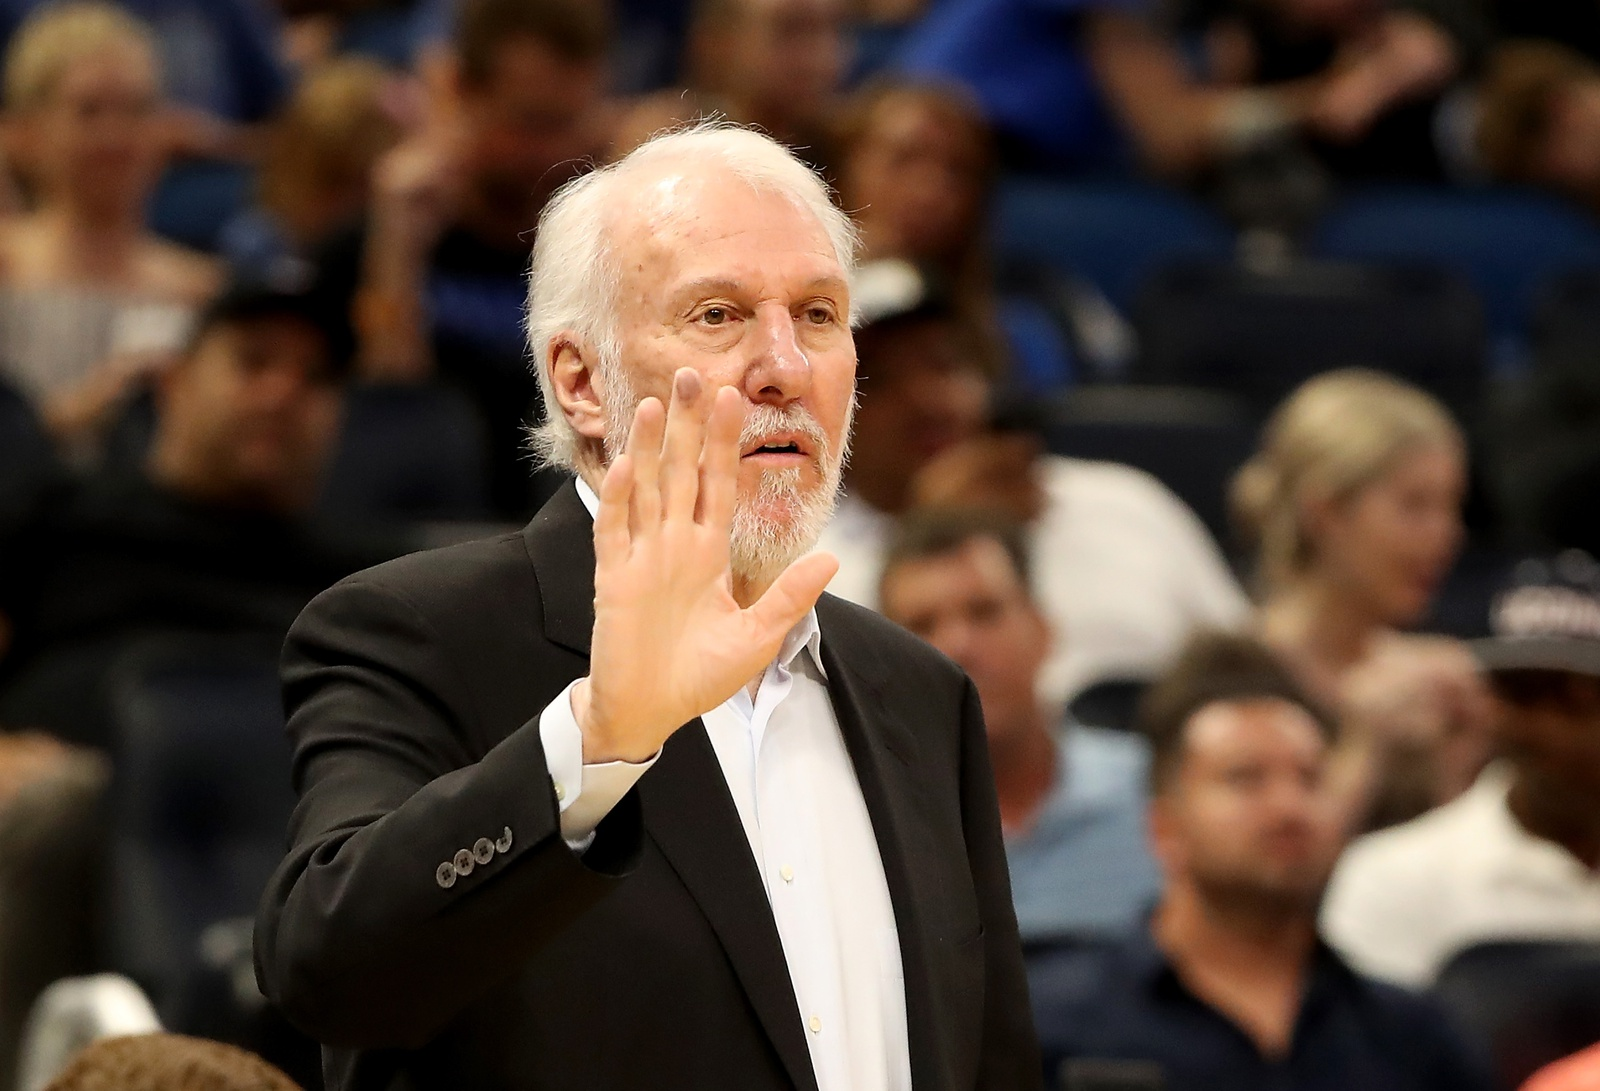 Head coach Gregg Popovich of the San Antonio Spurs calls out a play during a pre-season game against the Orlando Magic at Amway Center on October 12, 2018 in Orlando, Florida.